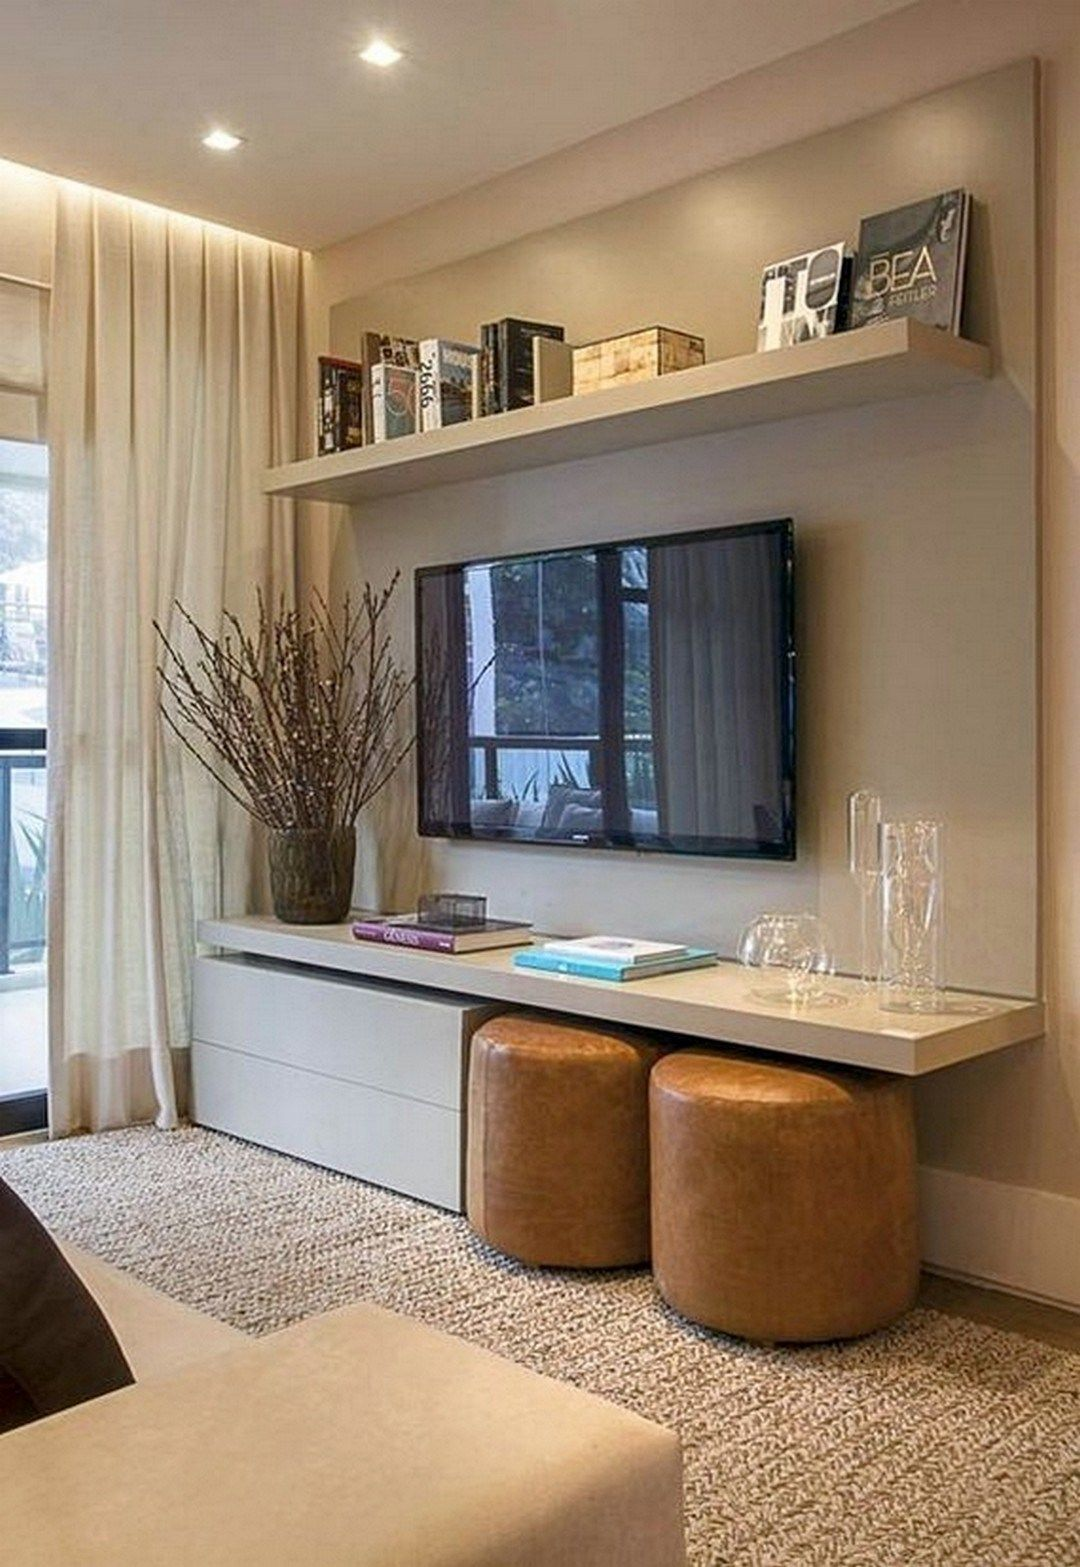 Cozy Small Apartment Decorating Ideas On A Budget 8 Decomagz Small Living Rooms Home And Living Small Living Room